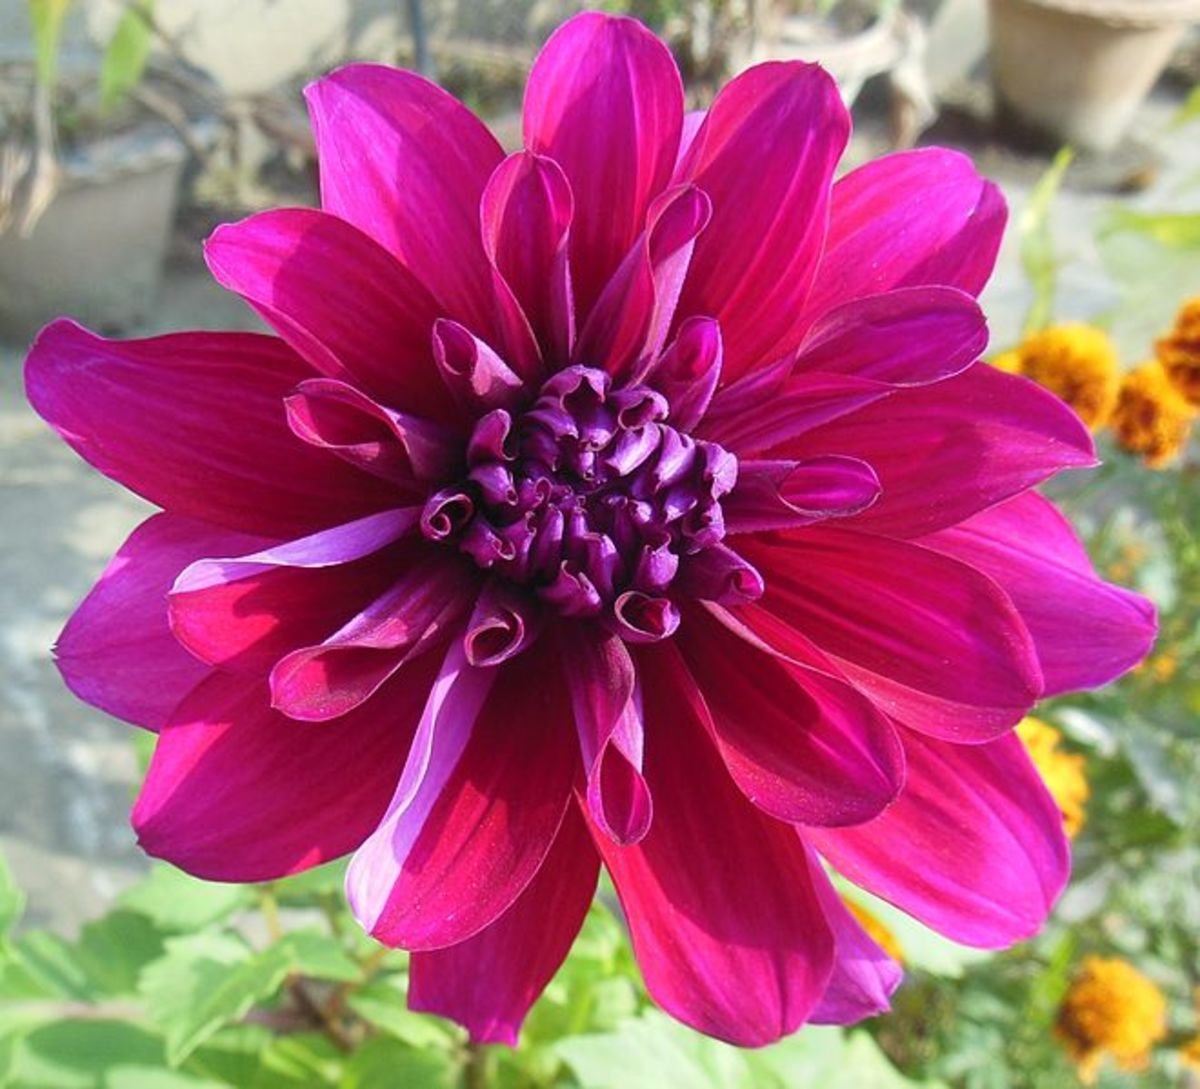 The Dahlia was declared the national flower of Mexico